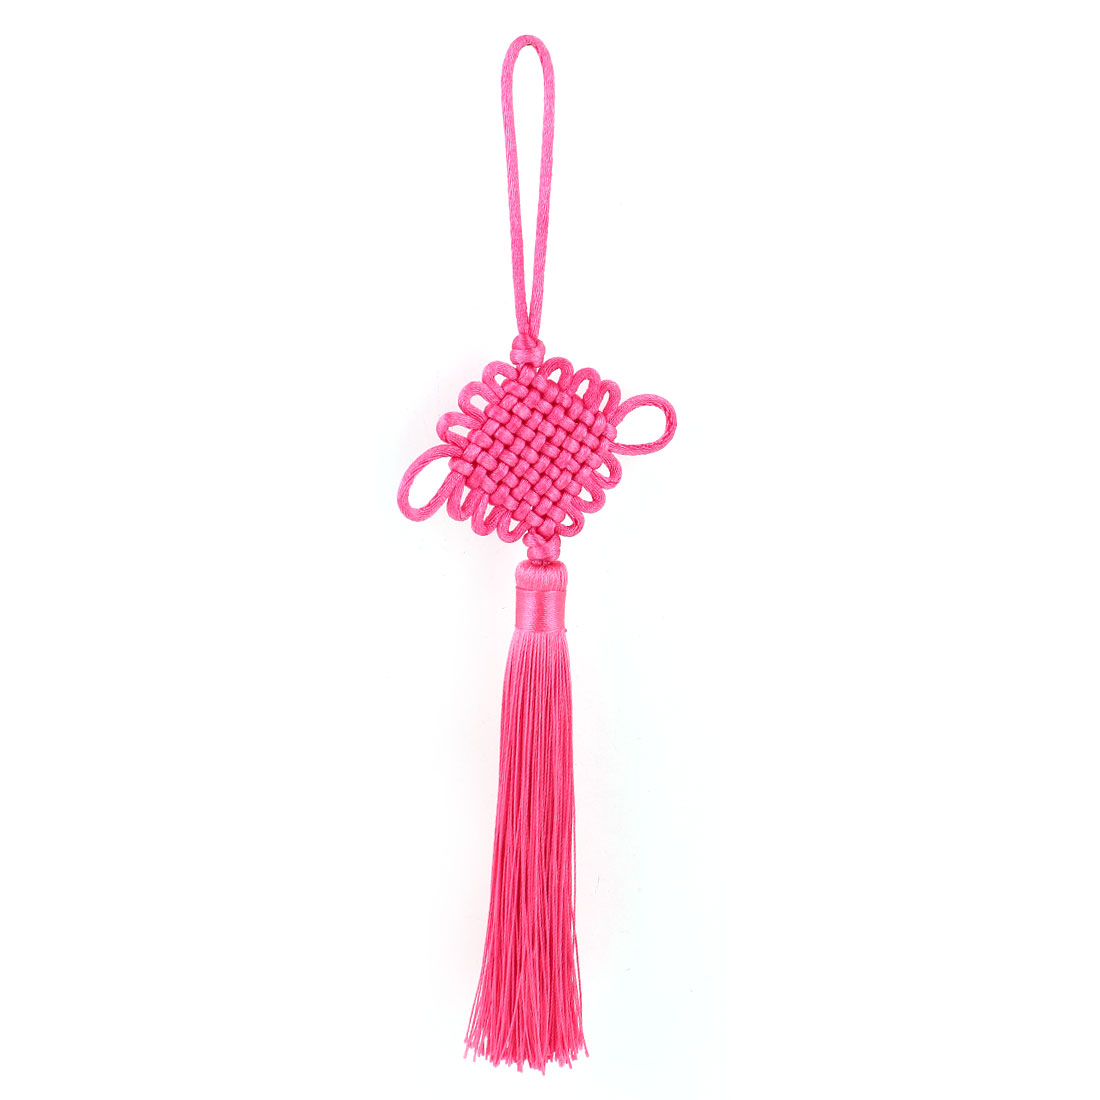 Car Truck Decor Handmade Braid Tassel Chinese Knot Ornament Fuchsia 30cm